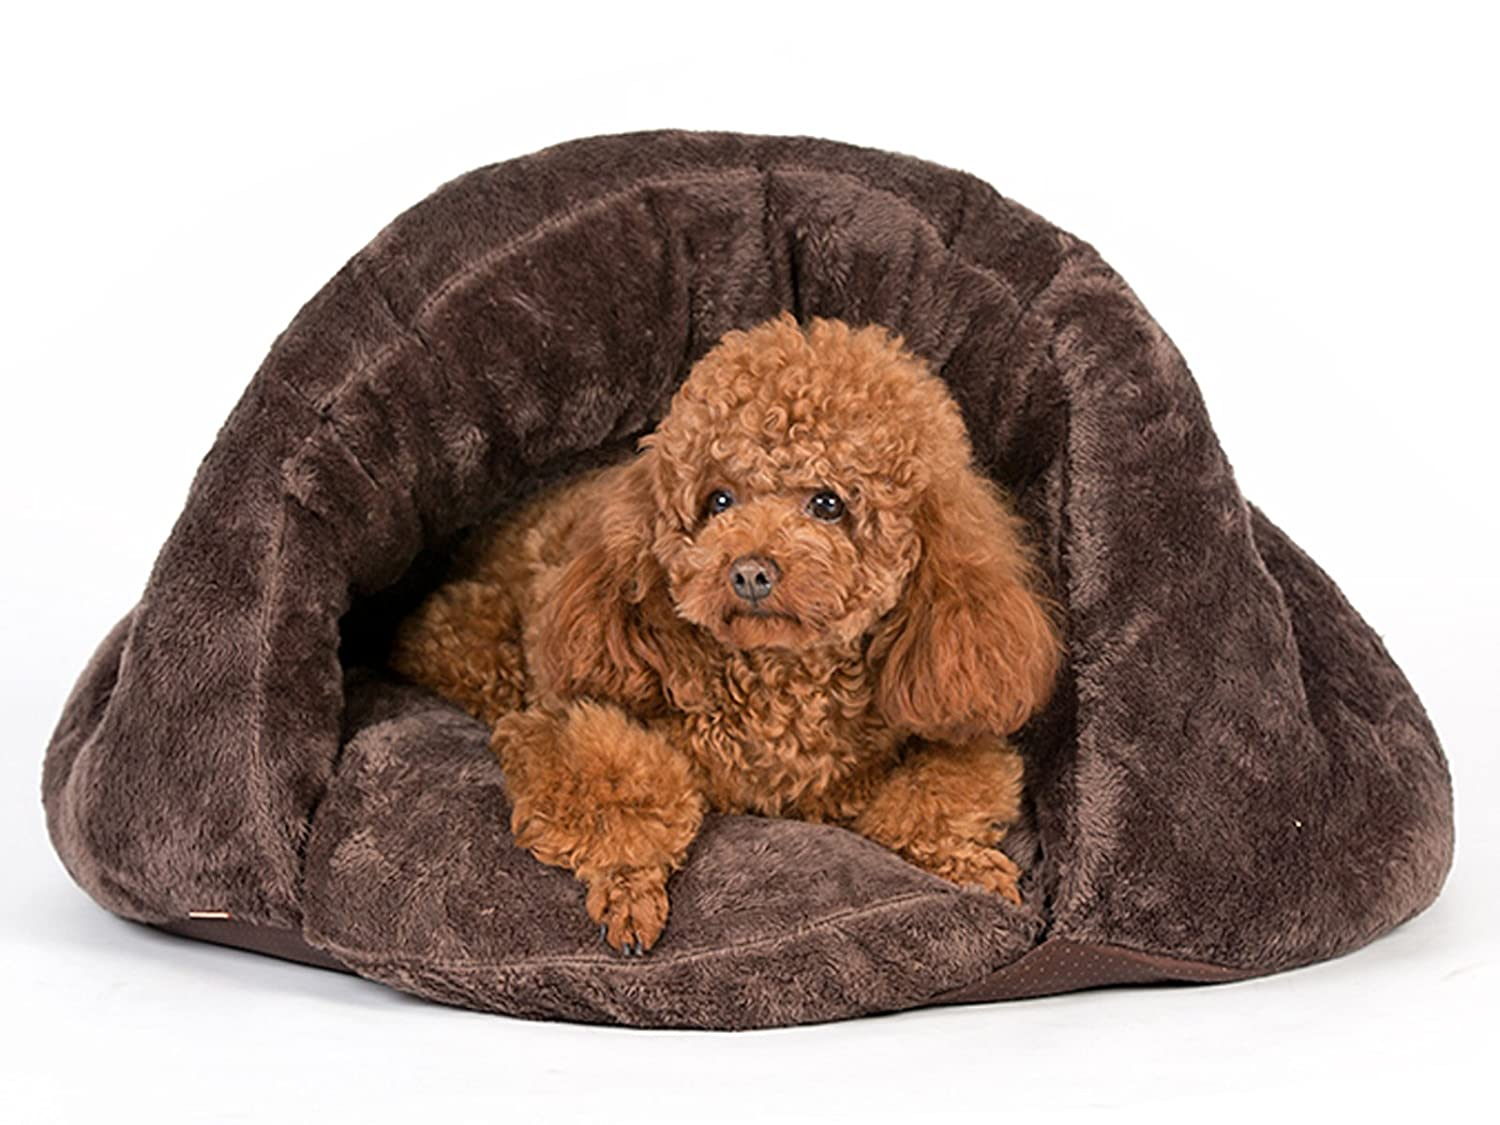 PLS Birdsong The Original Cuddle Pouch Pet Bed, Dog Cave, Covered Hooded Pet Bed, Cosy, for Burrower Cats and Puppies